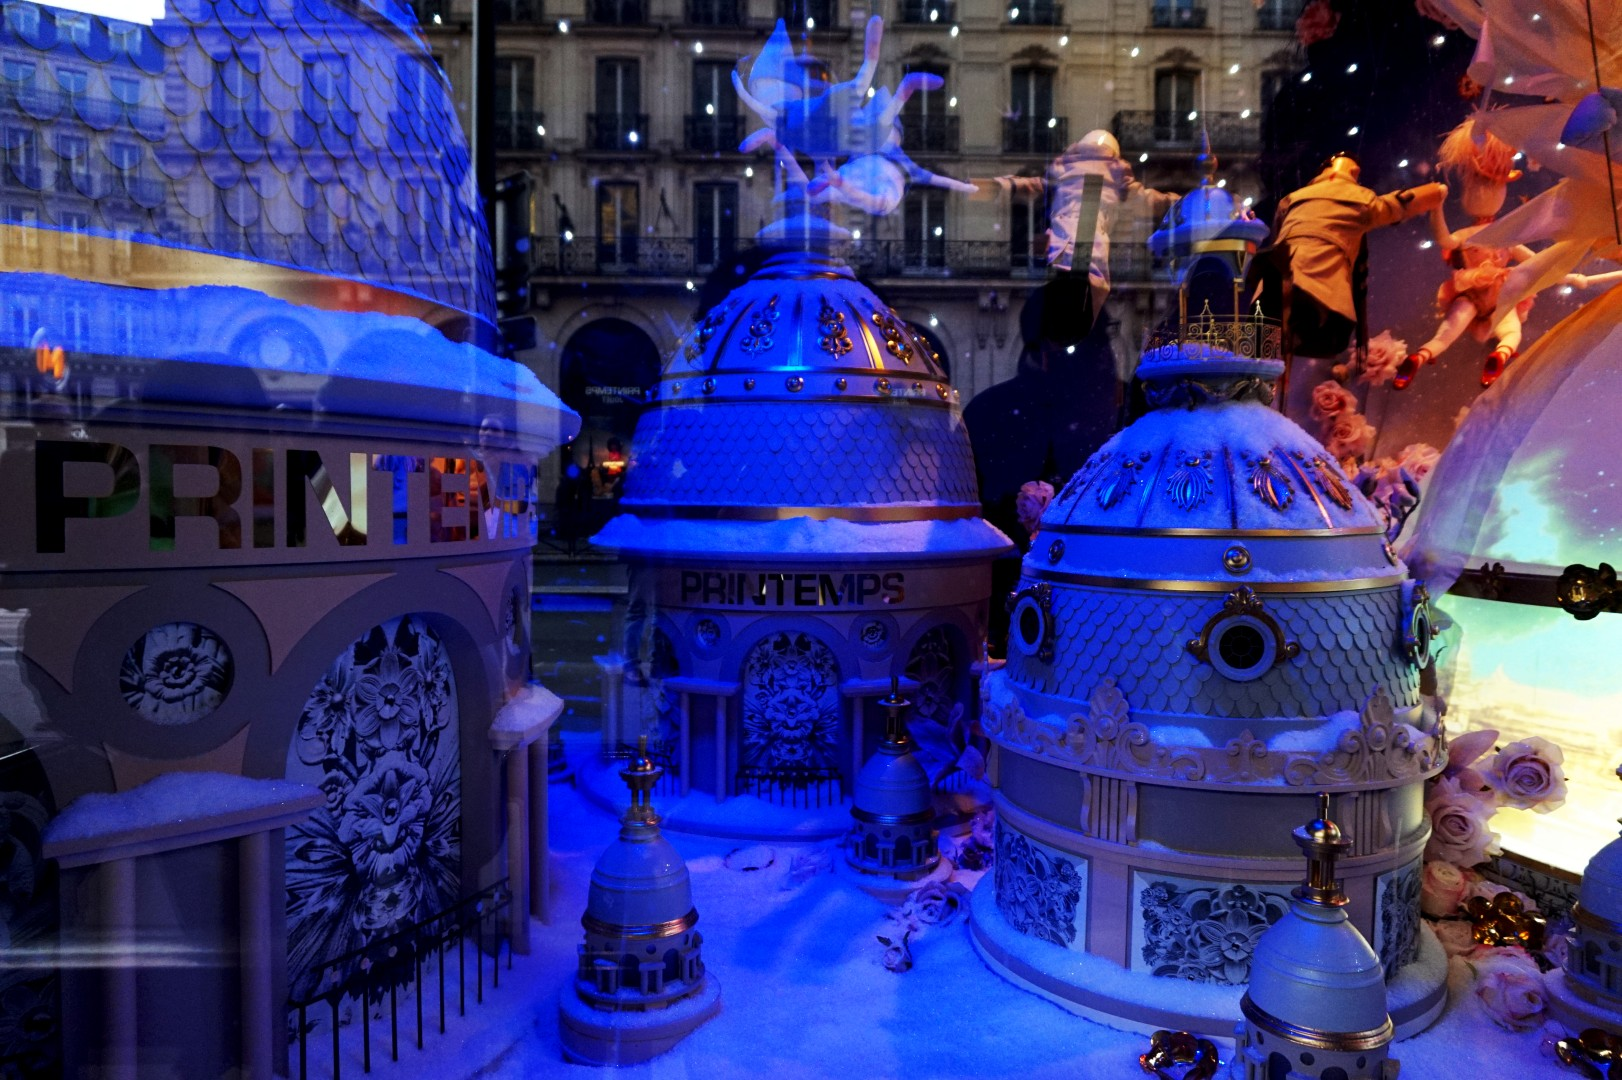 Noël à Paris - Vitrine du Printemps 2015